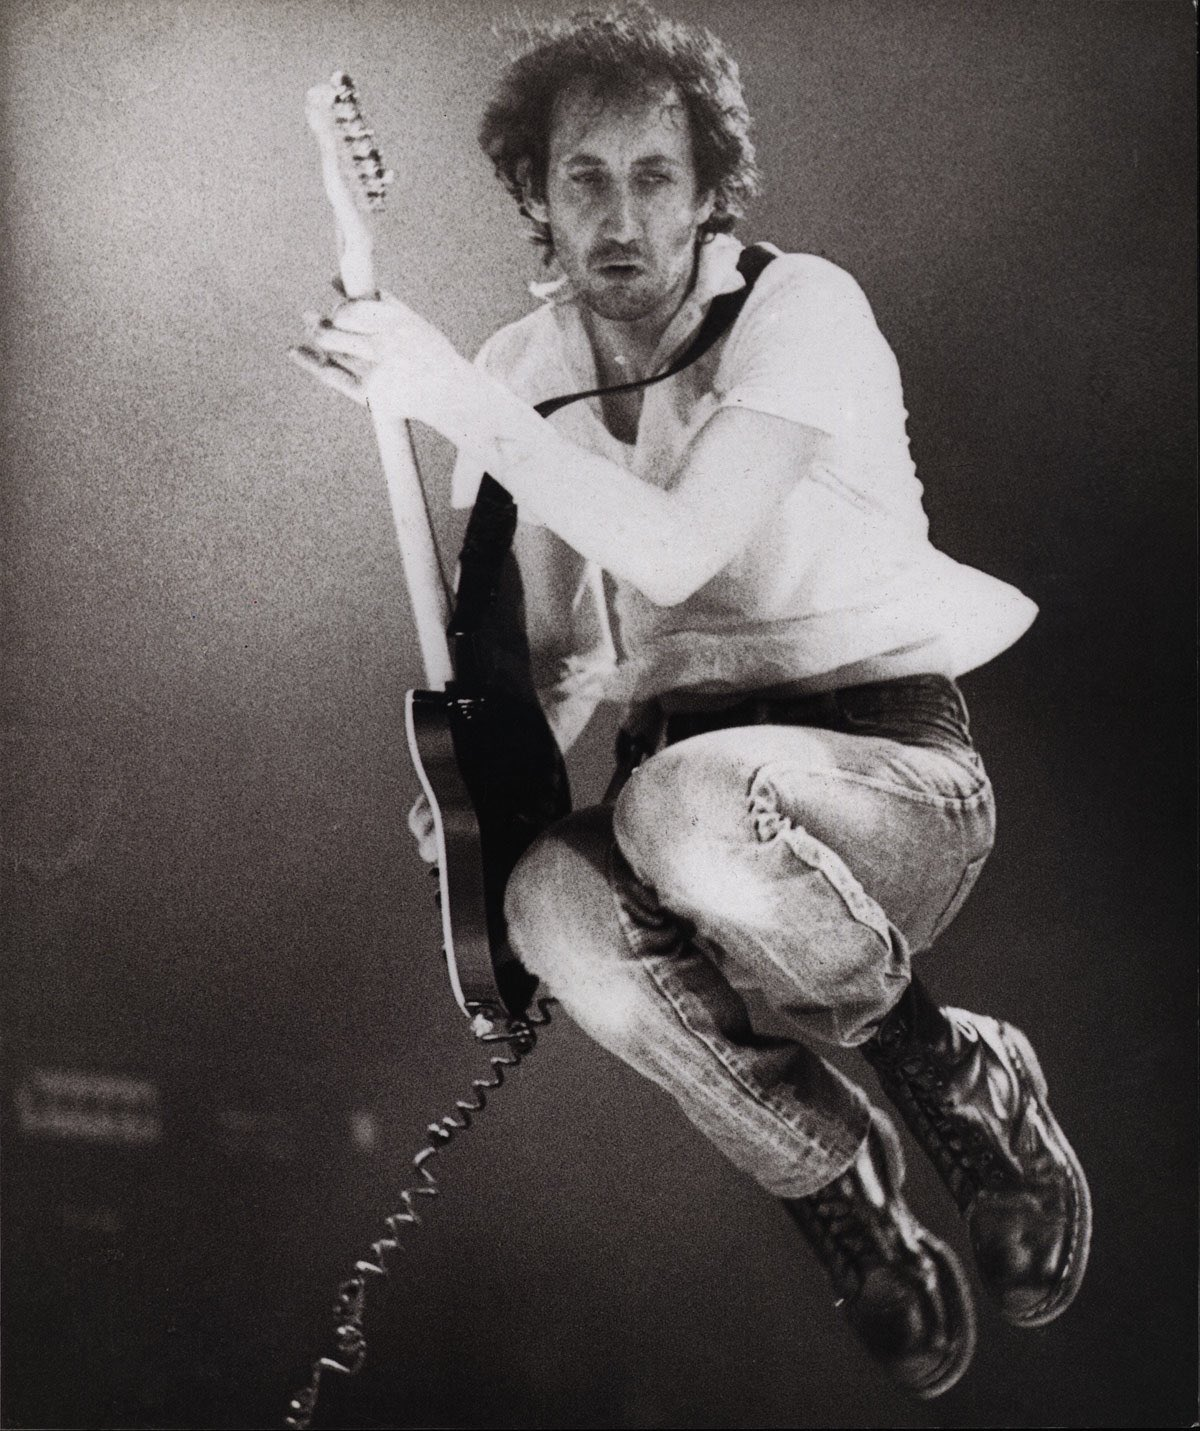 Happy Birthday to guitarist, vocalist and songwriter of Pete Townshend.